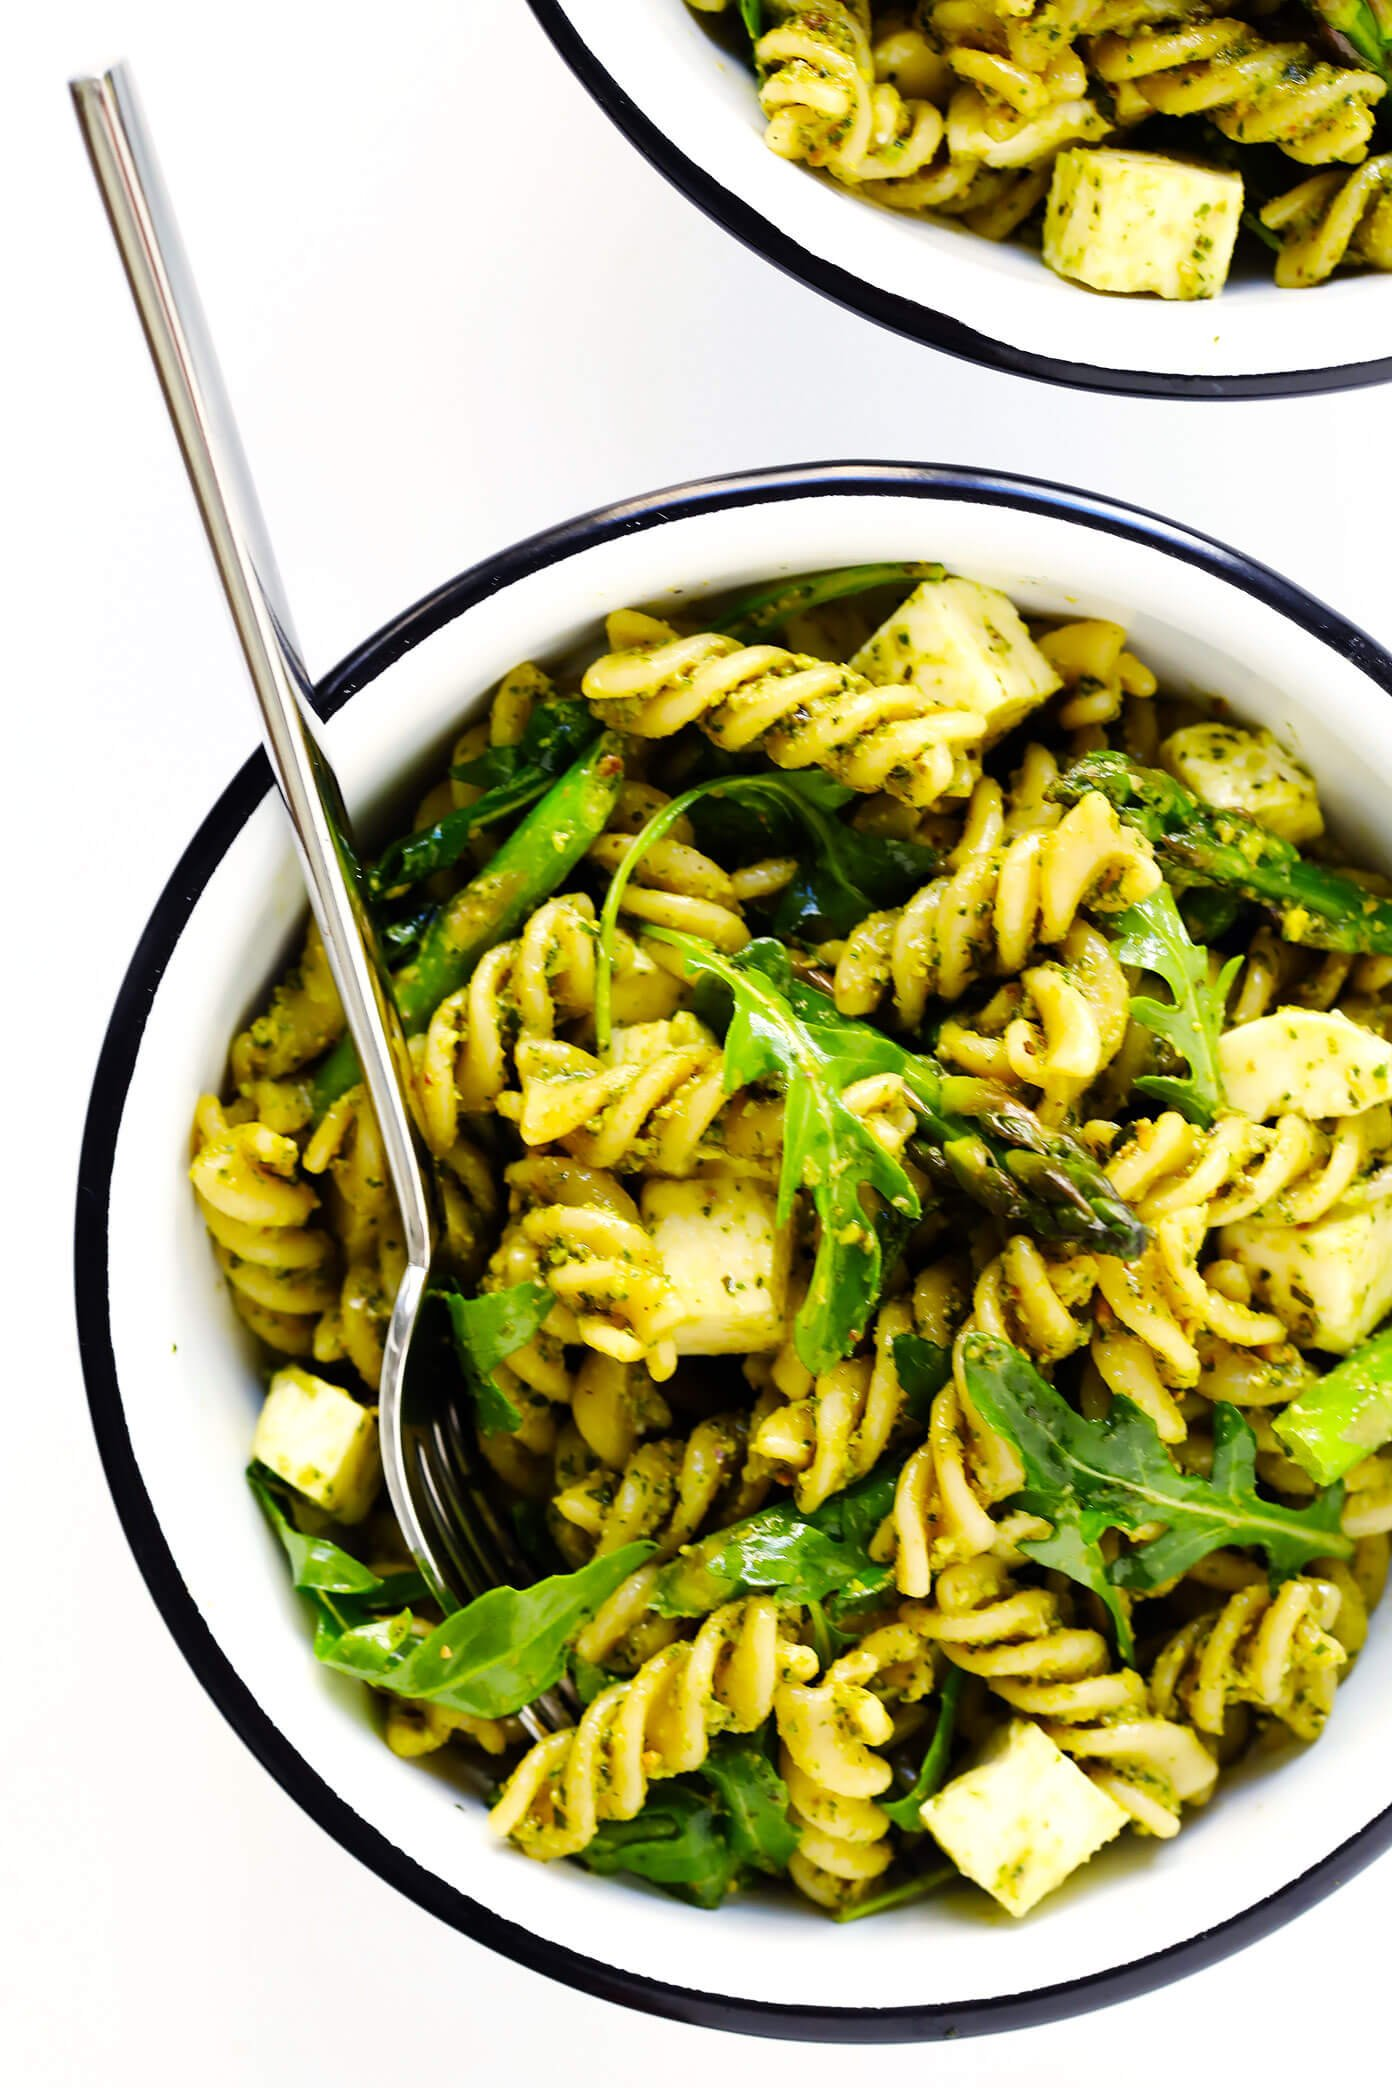 The Best Pistachio Pesto Pasta Salad Recipe!